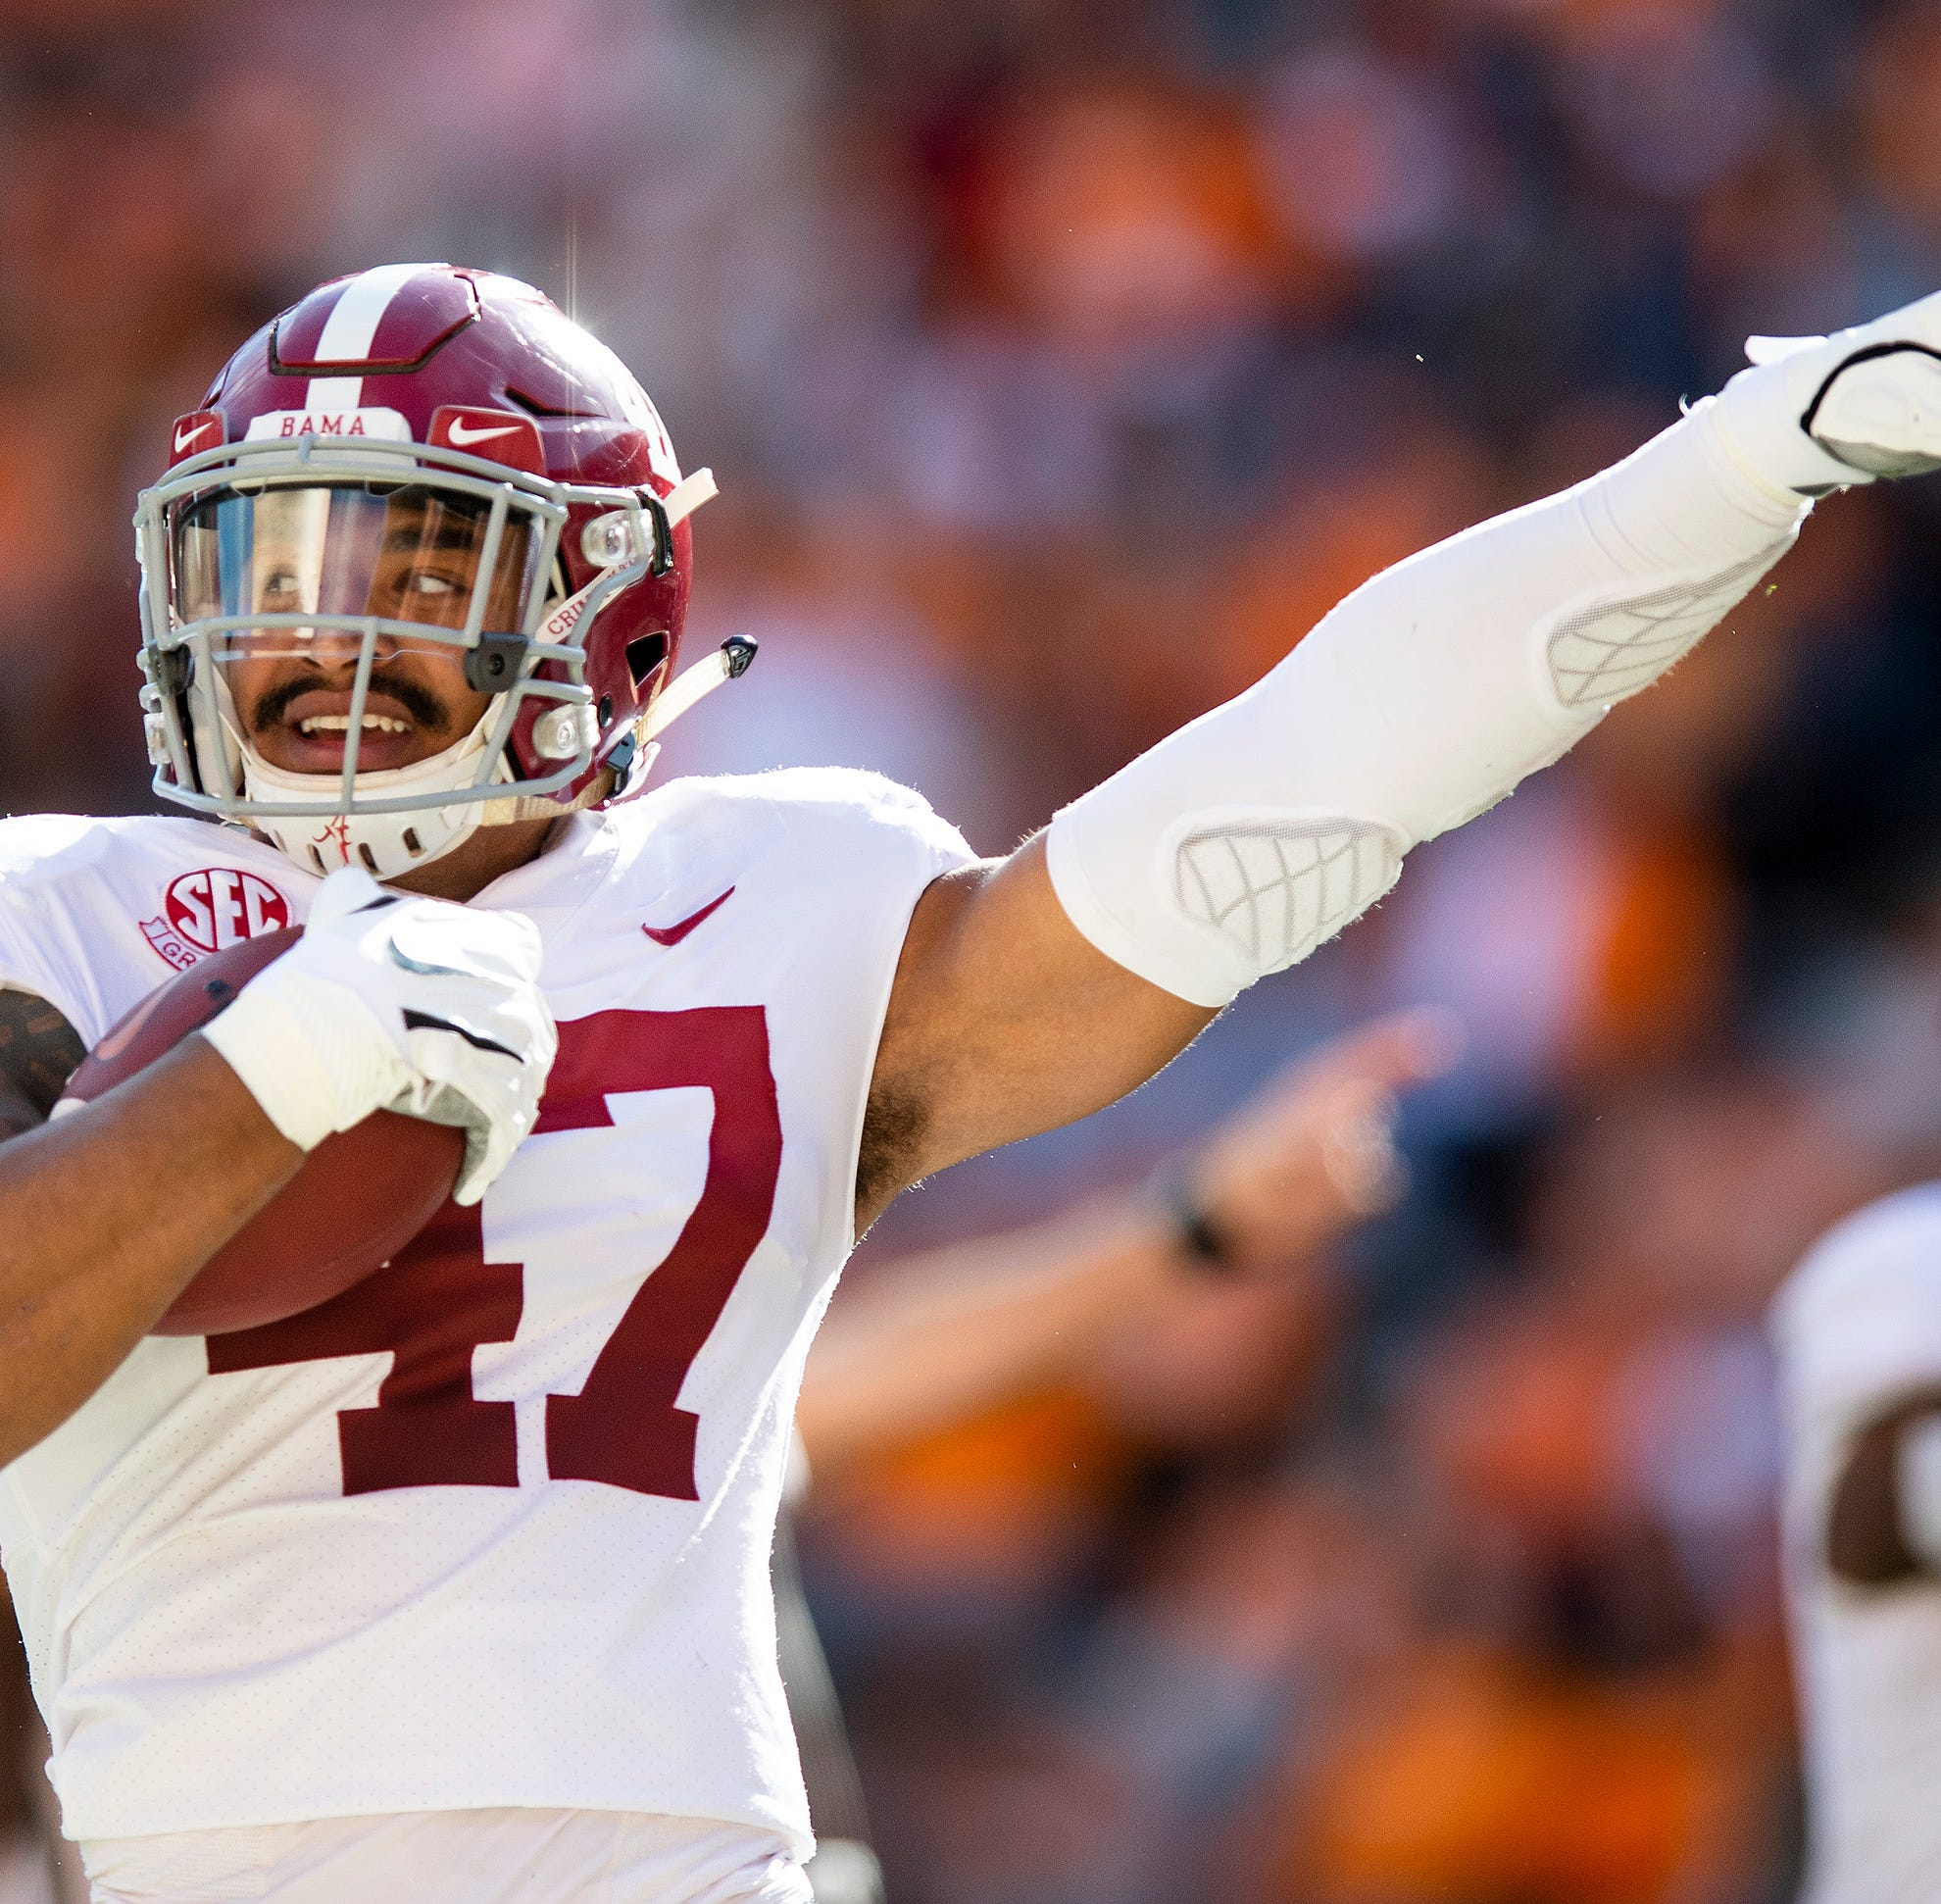 Alabama earns high marks for 12th straight win over Big Orange